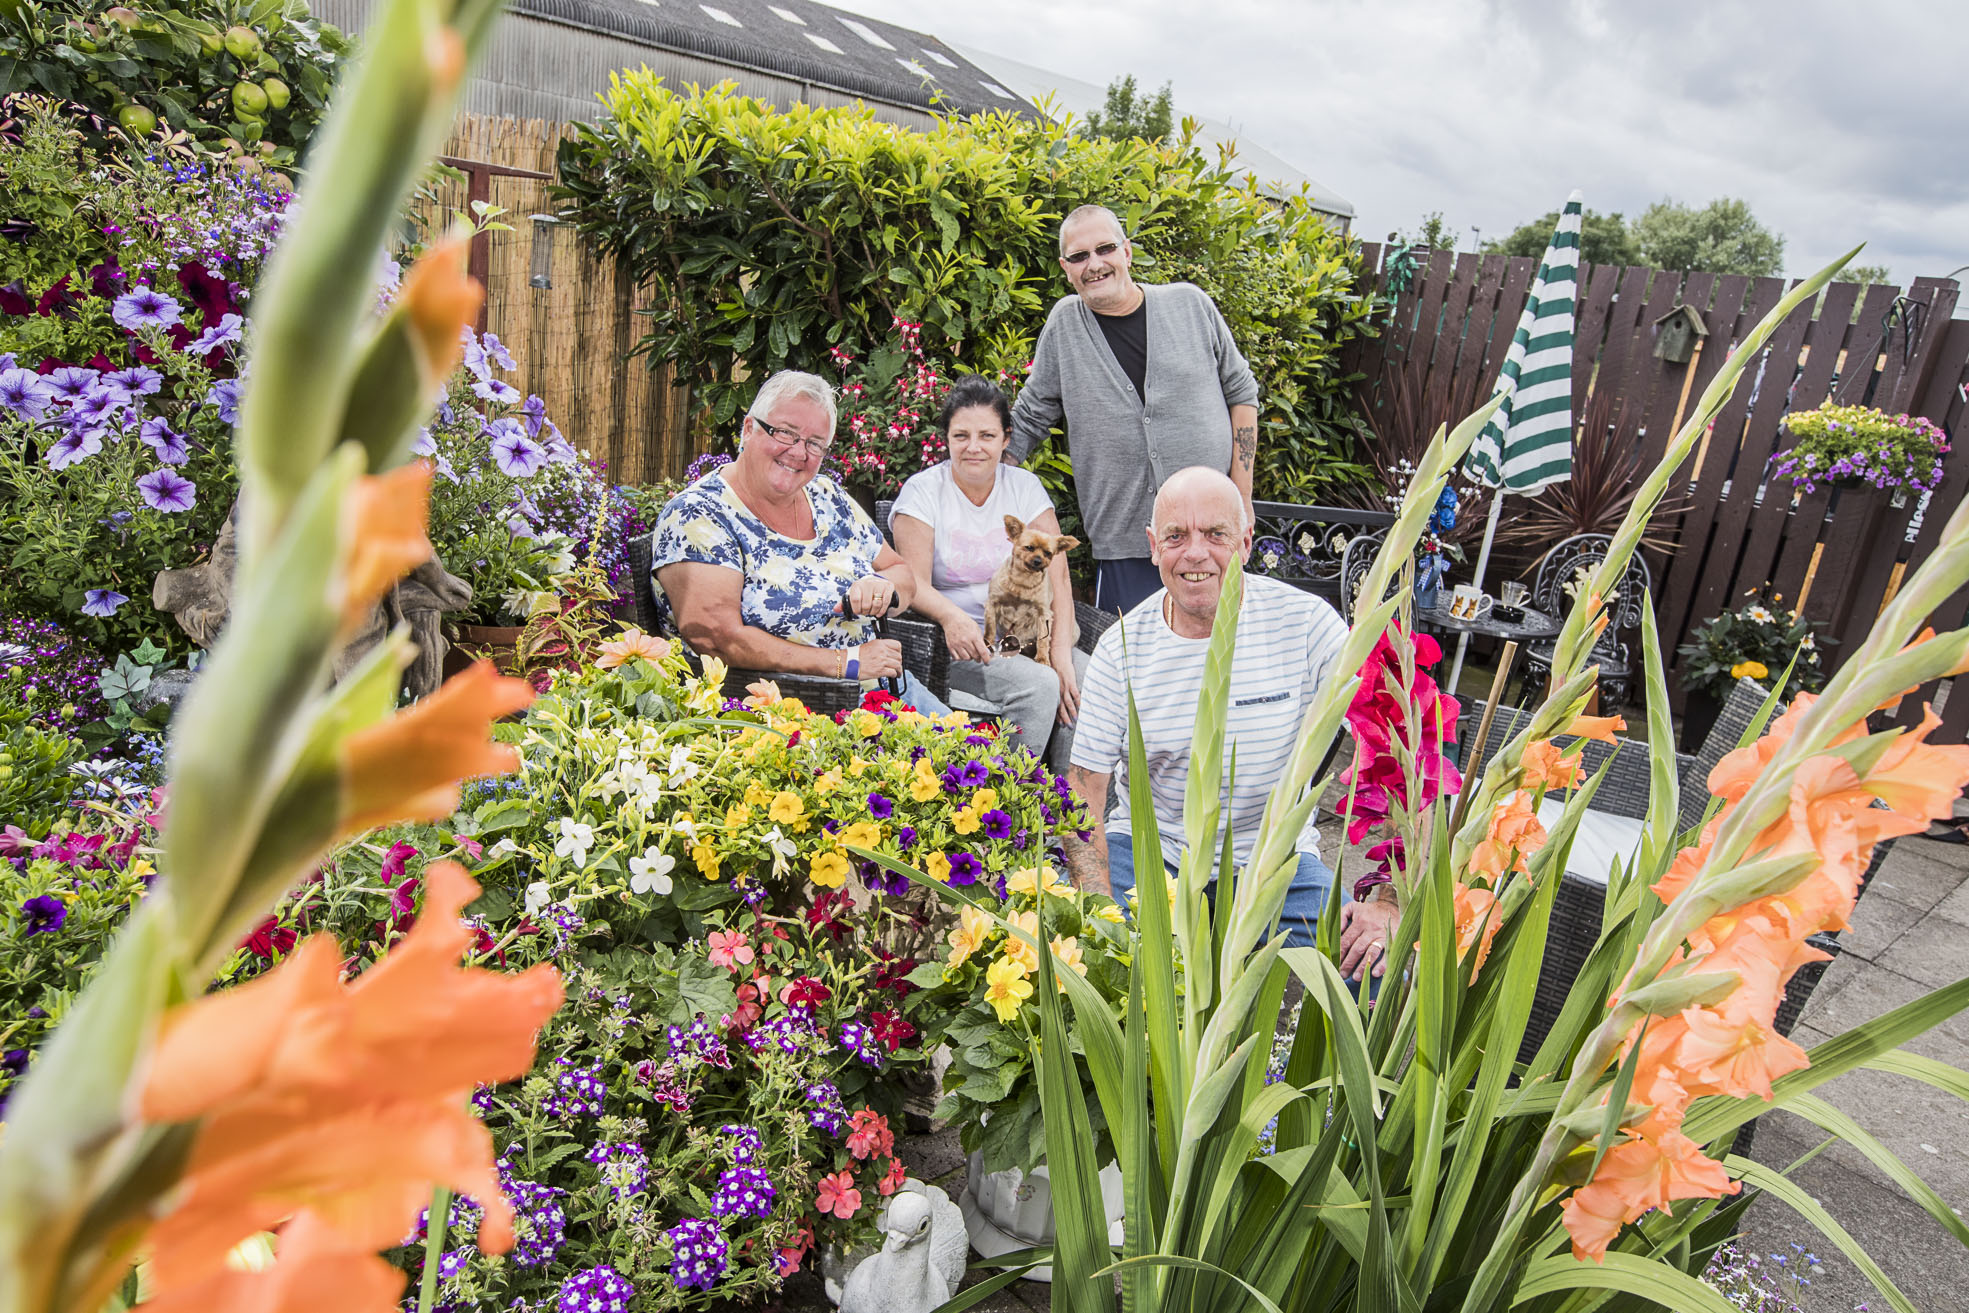 Green-fingered Cartrefi Conwy tenants dig their way to victory